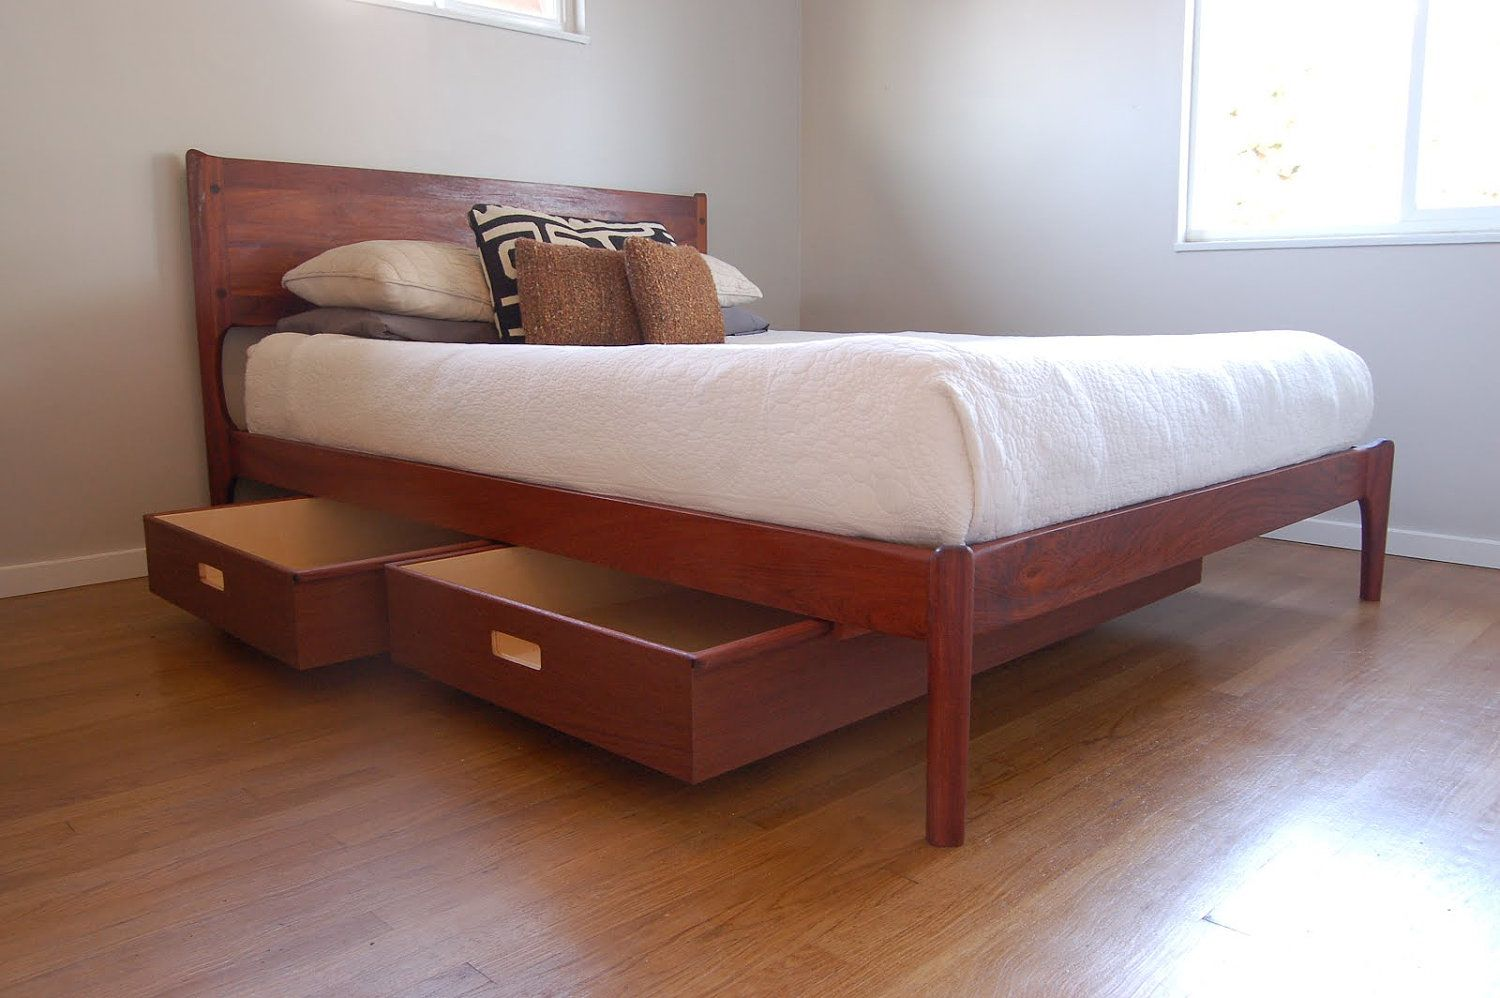 Classic Modern Bed with Storage (Mid Century Danish Modern